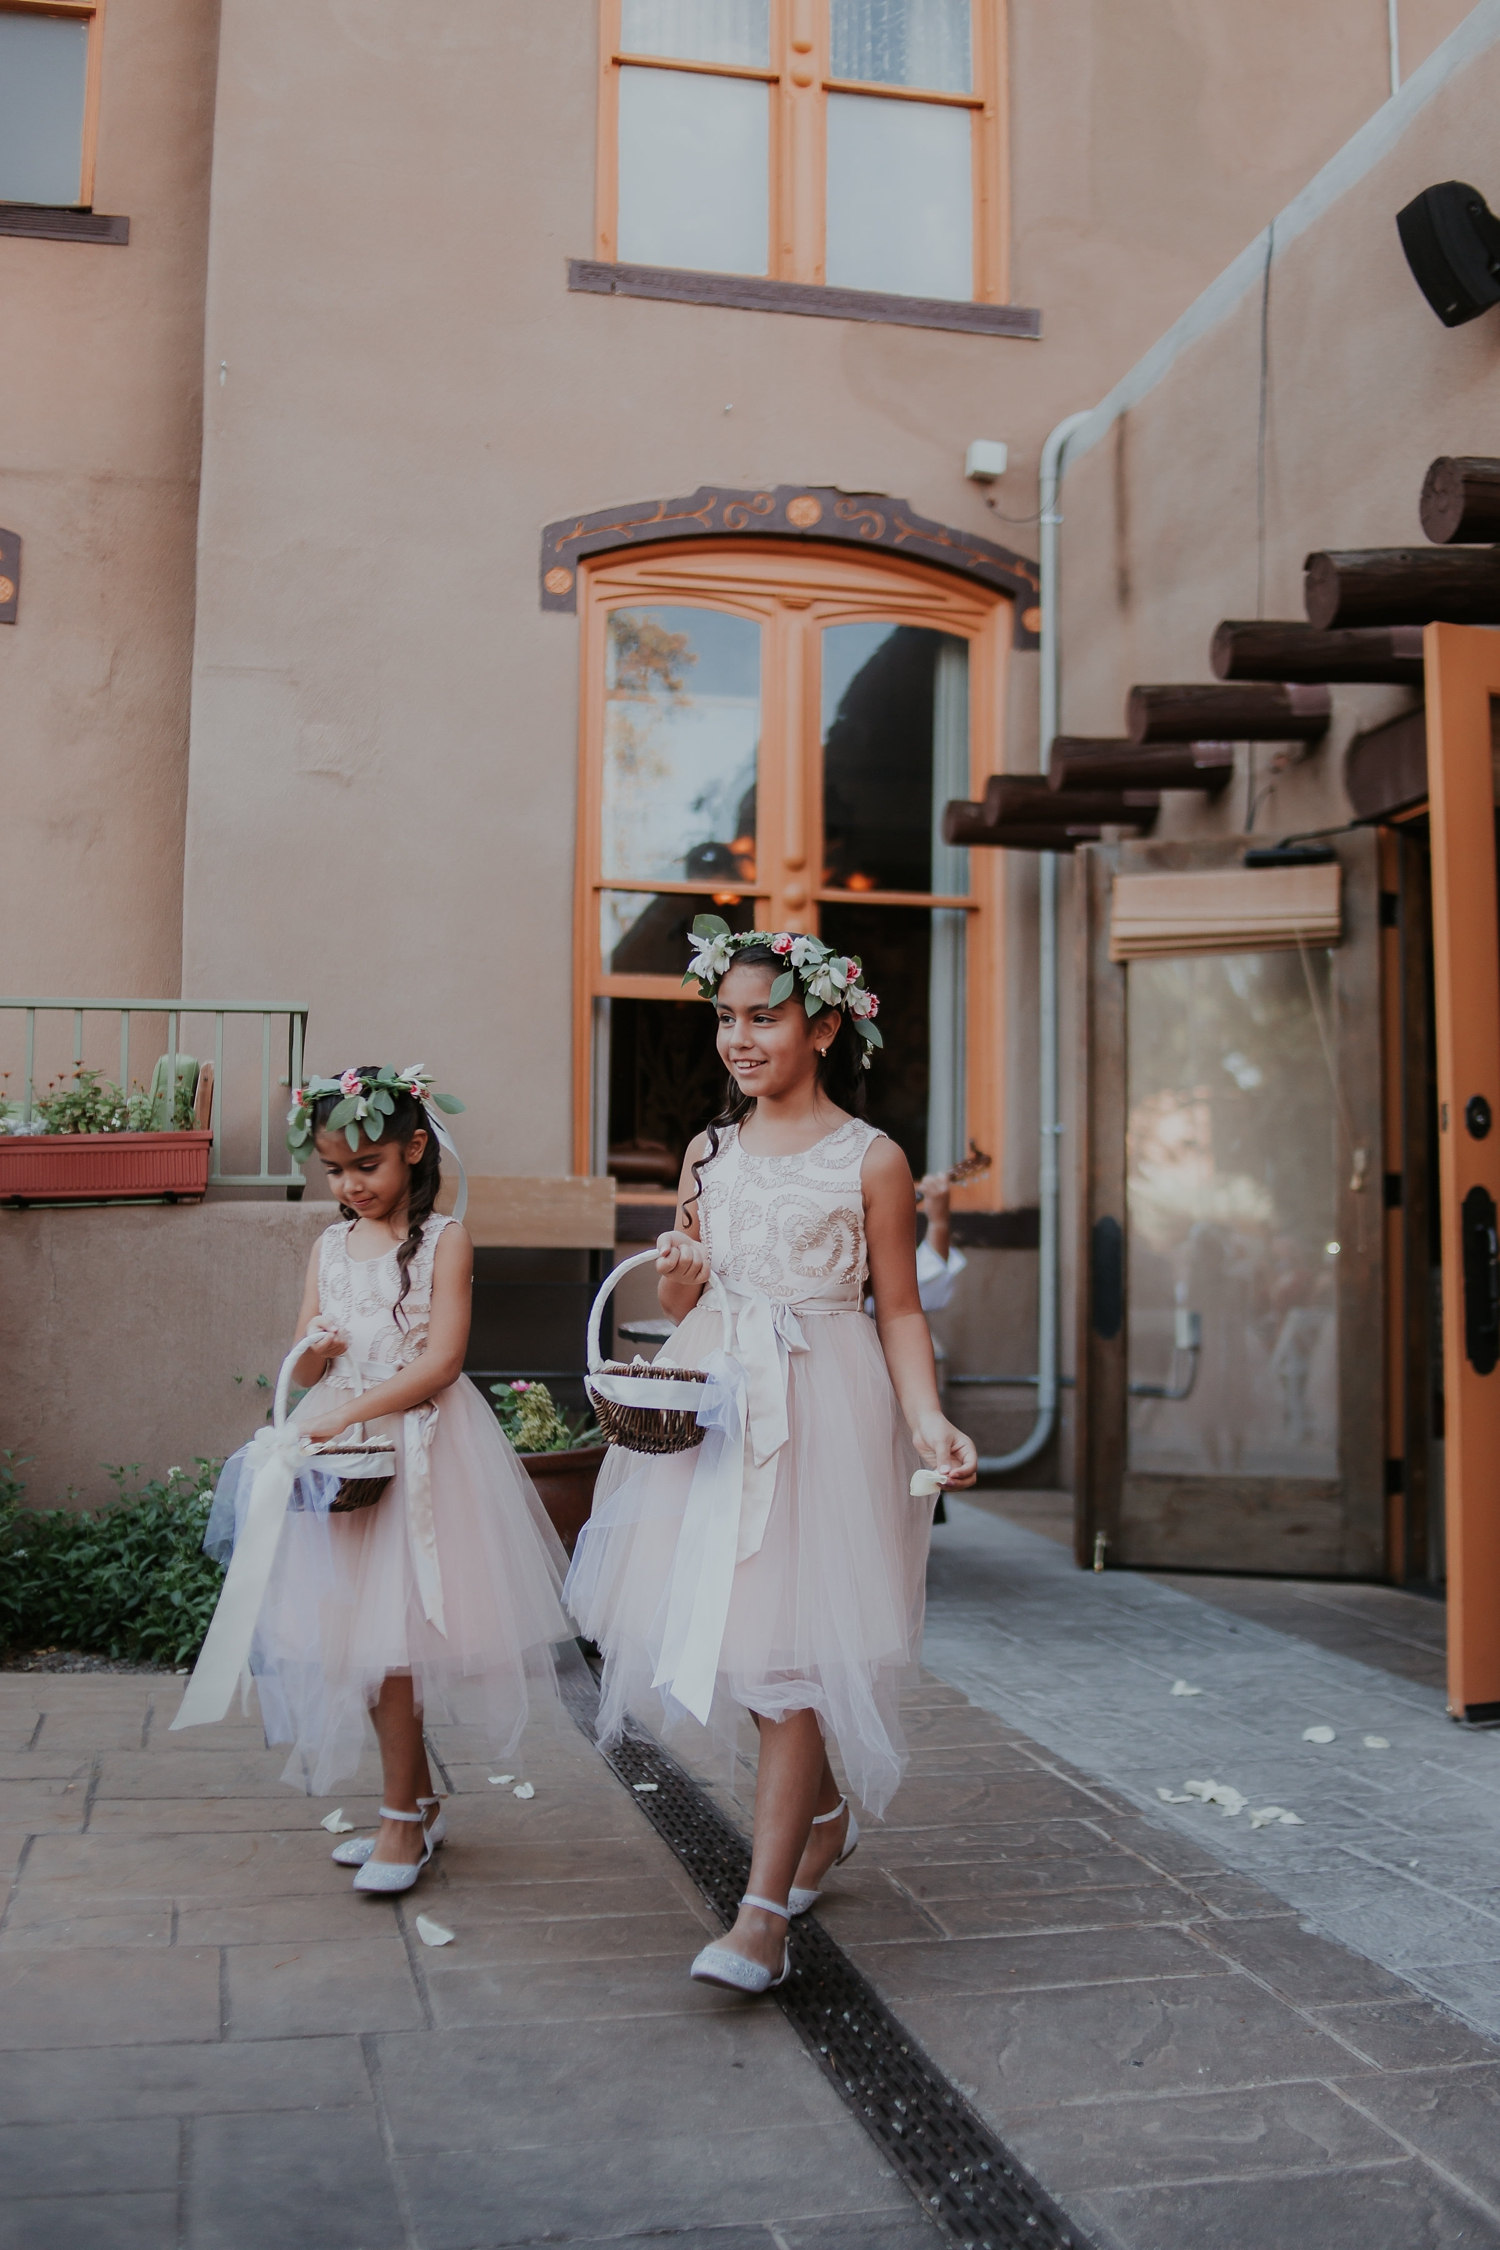 Alicia+lucia+photography+-+albuquerque+wedding+photographer+-+santa+fe+wedding+photography+-+new+mexico+wedding+photographer+-+la+ posada+santa+fe+wedding_0038.jpg